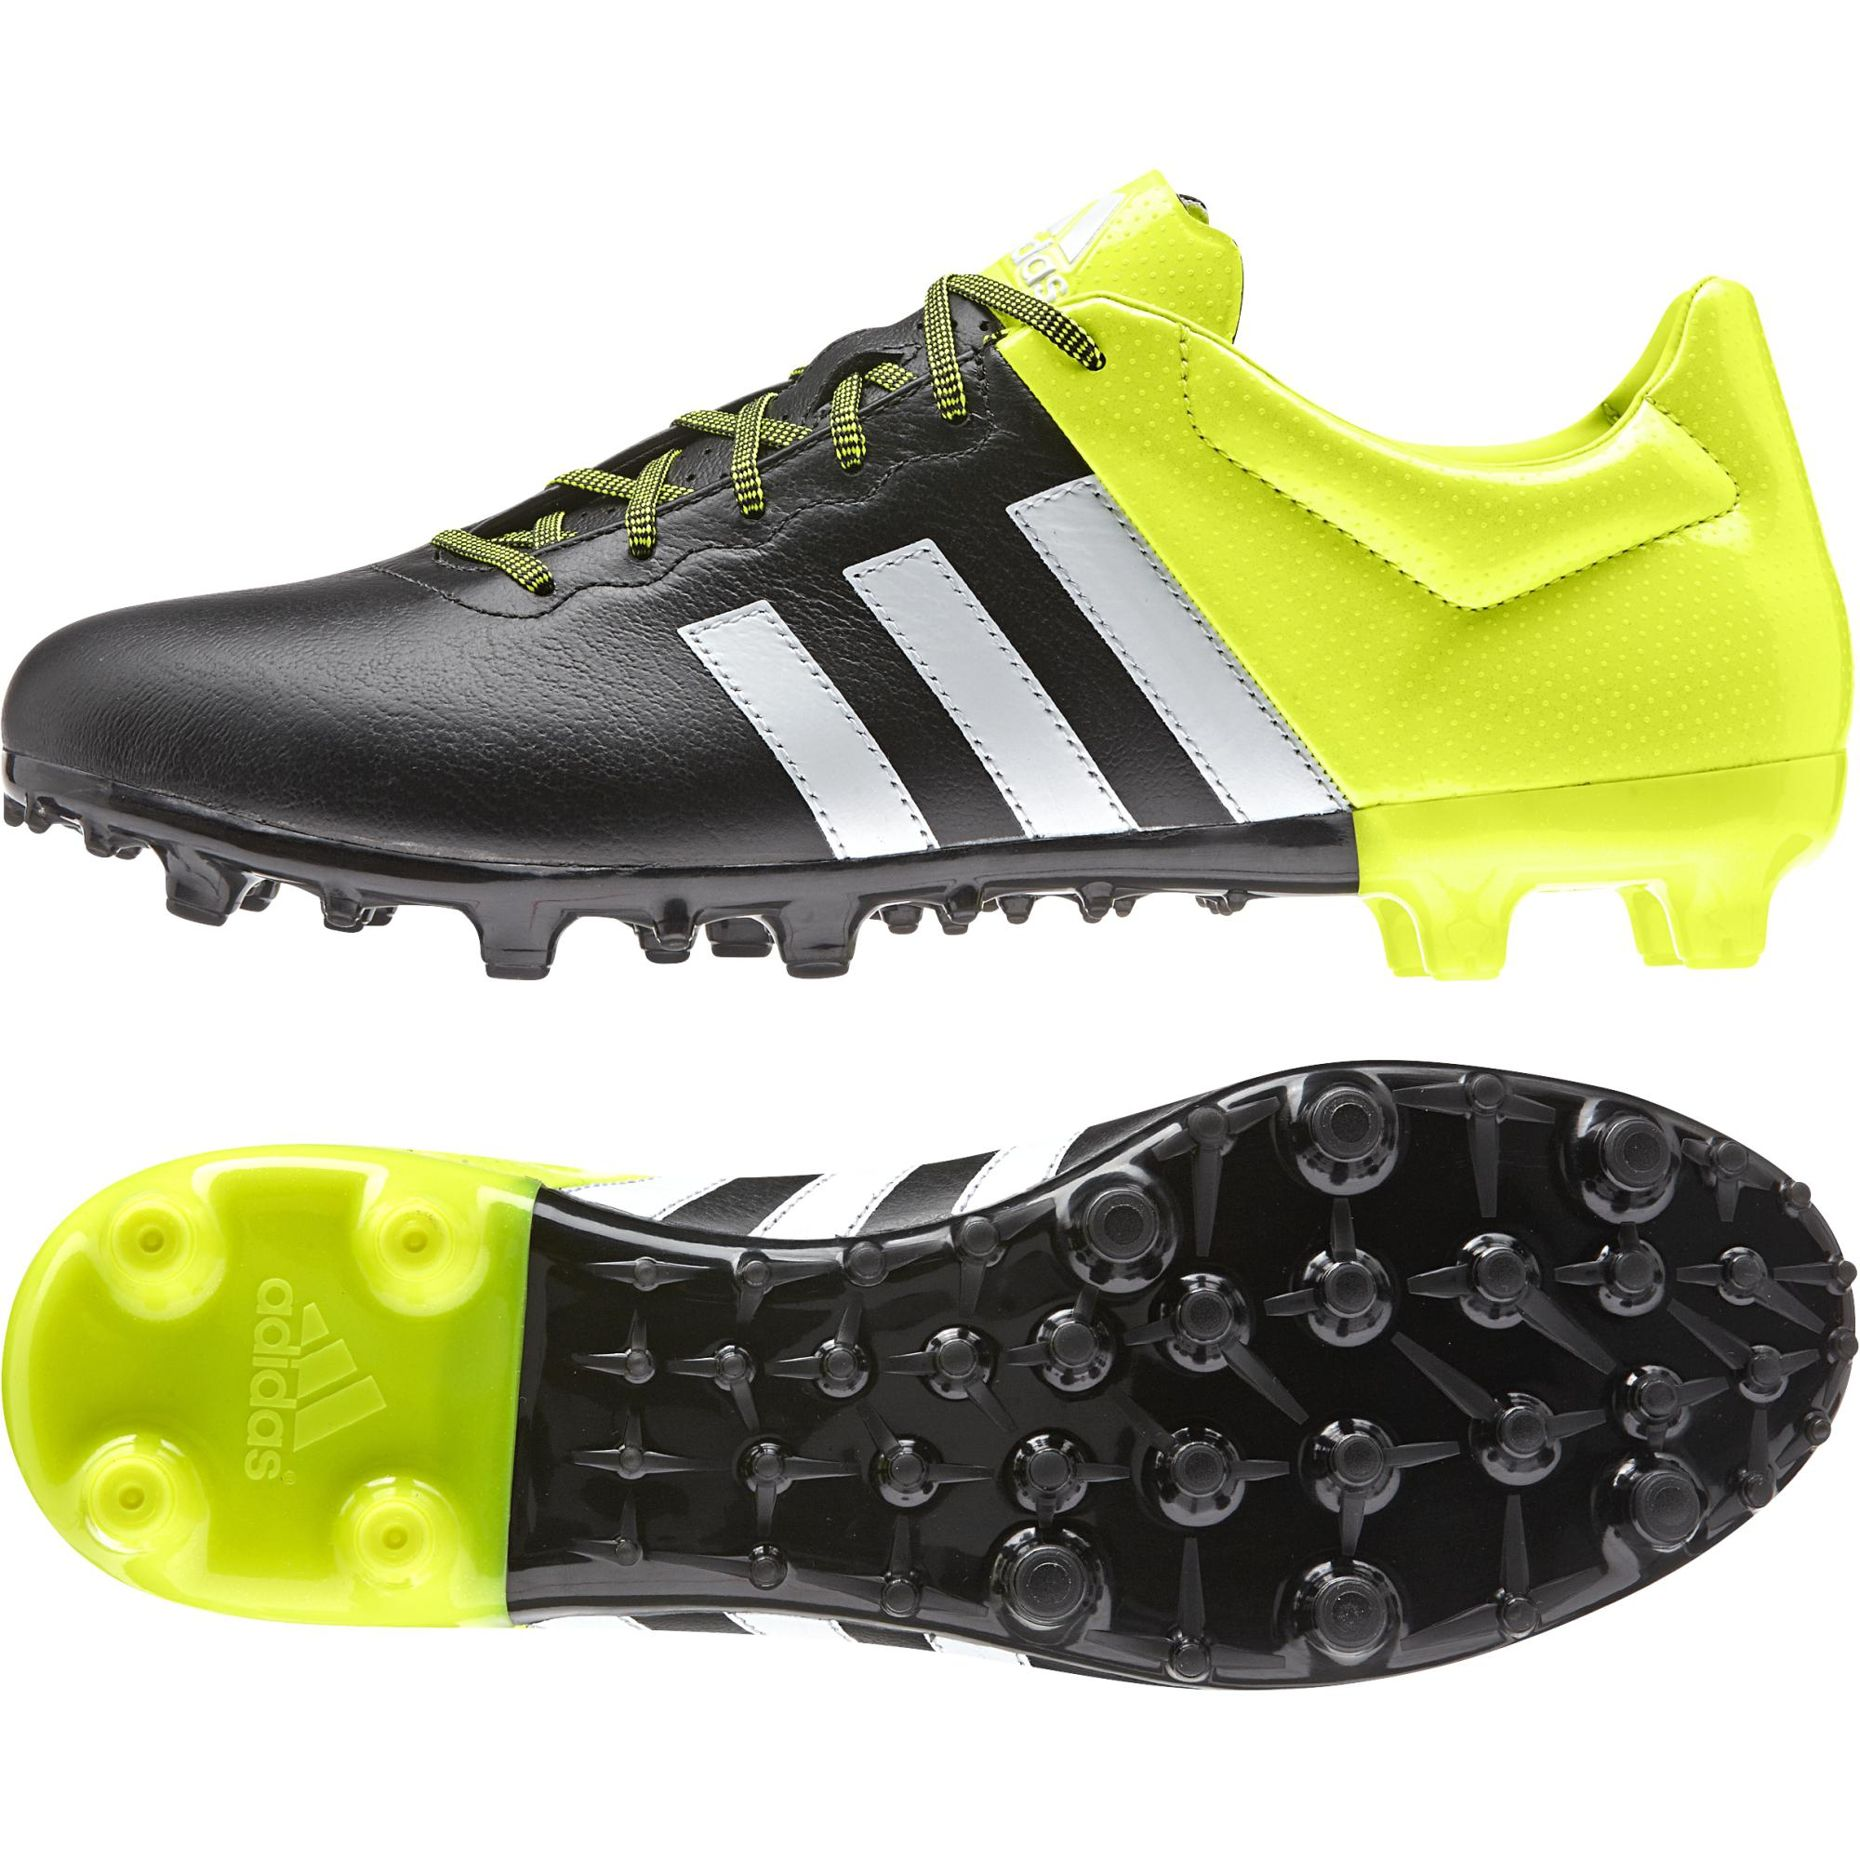 Turfy Adidas ACE 15.3 FGAG Leather (B32810)